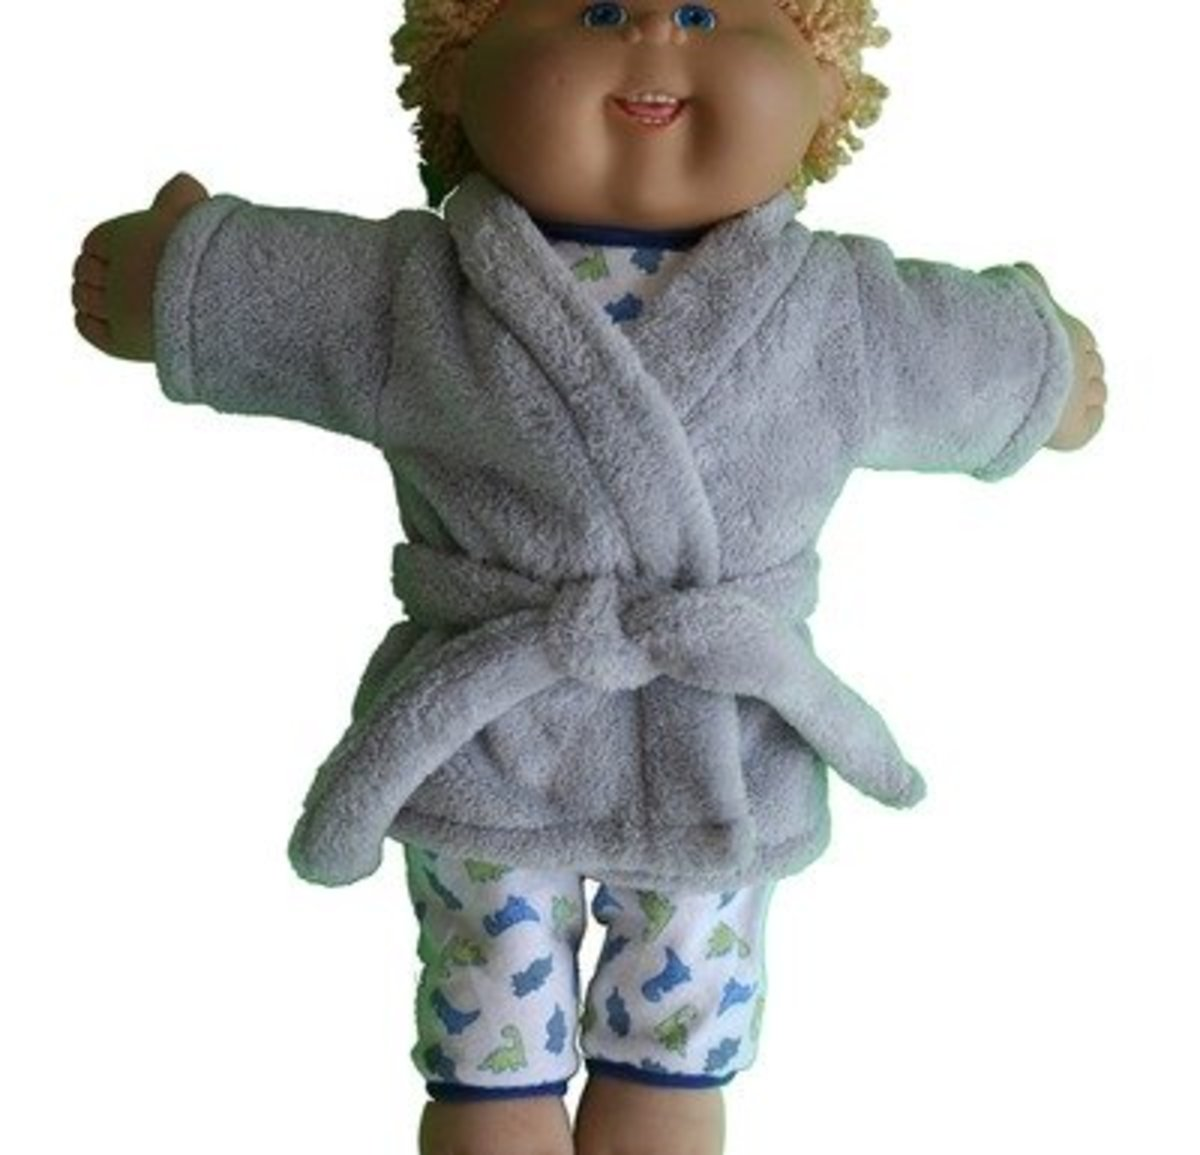 Cabbage Patch Kid robe